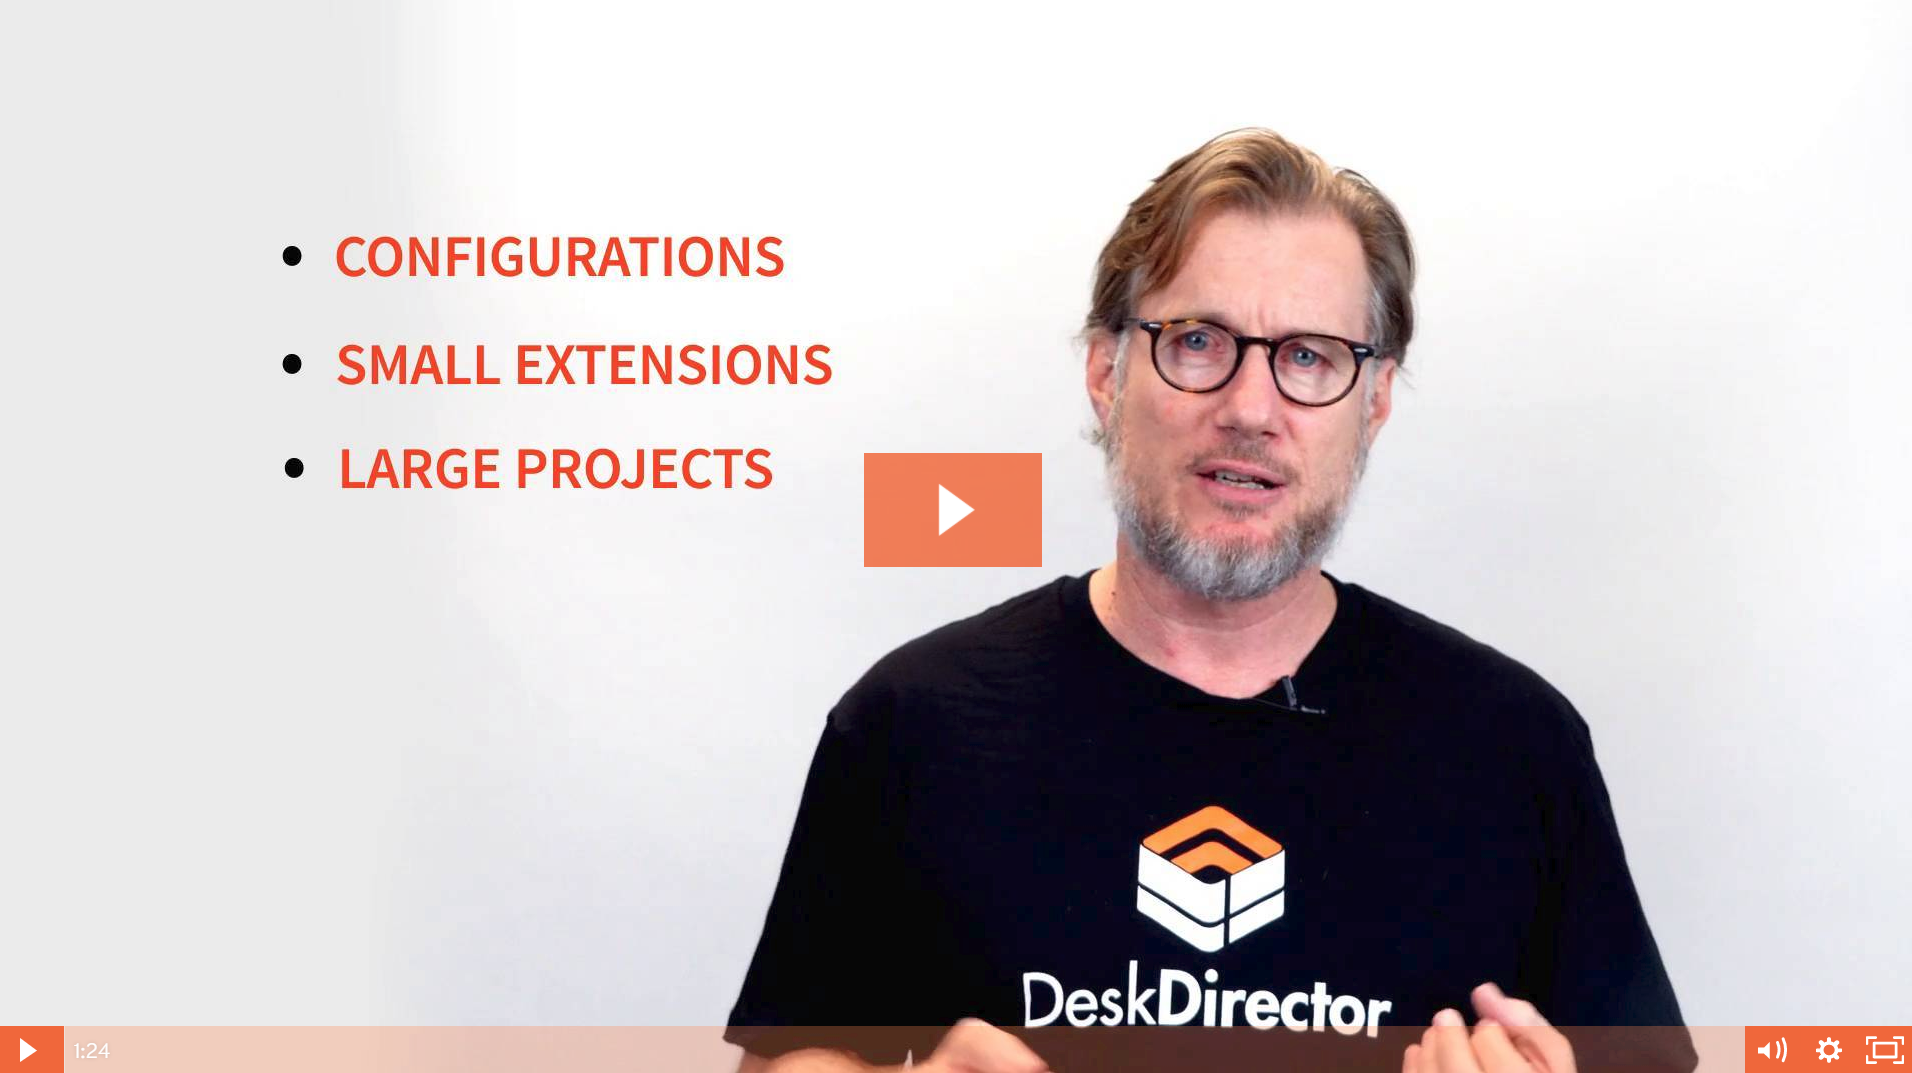 DeskDirector Consulting Part 2 - Small extensions